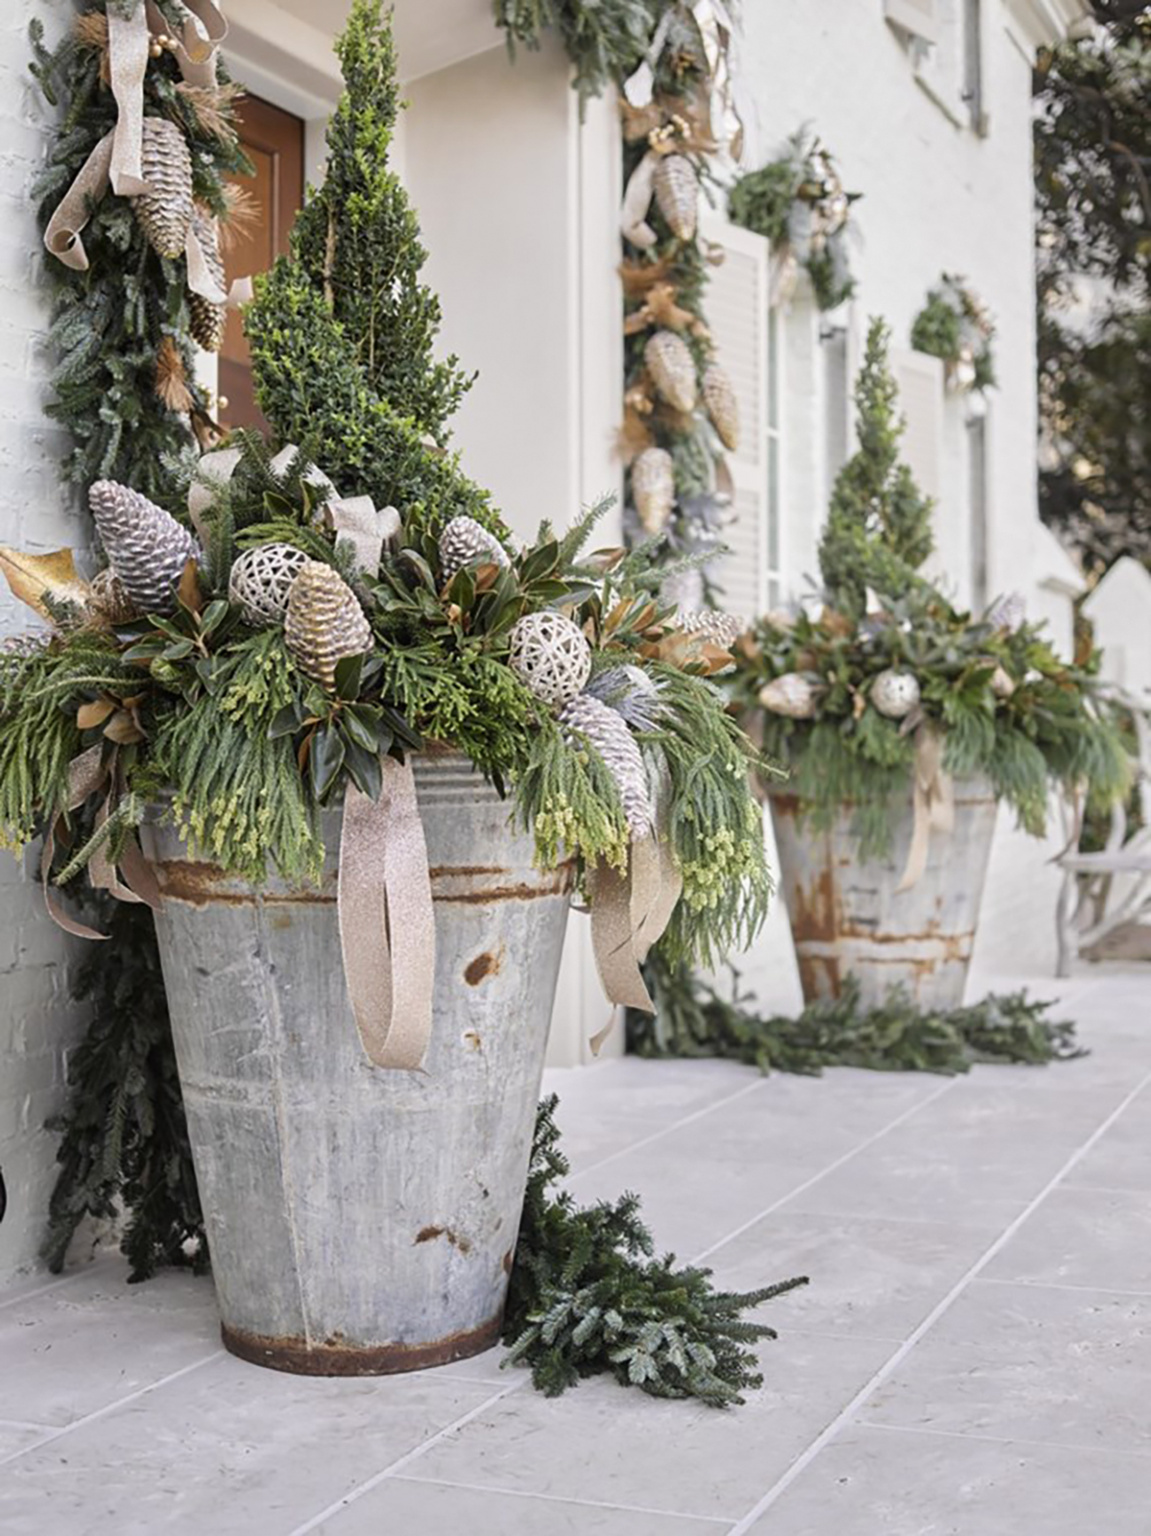 atlanta homes and lifestyles holiday house planters on Cindy Hattersley's blog